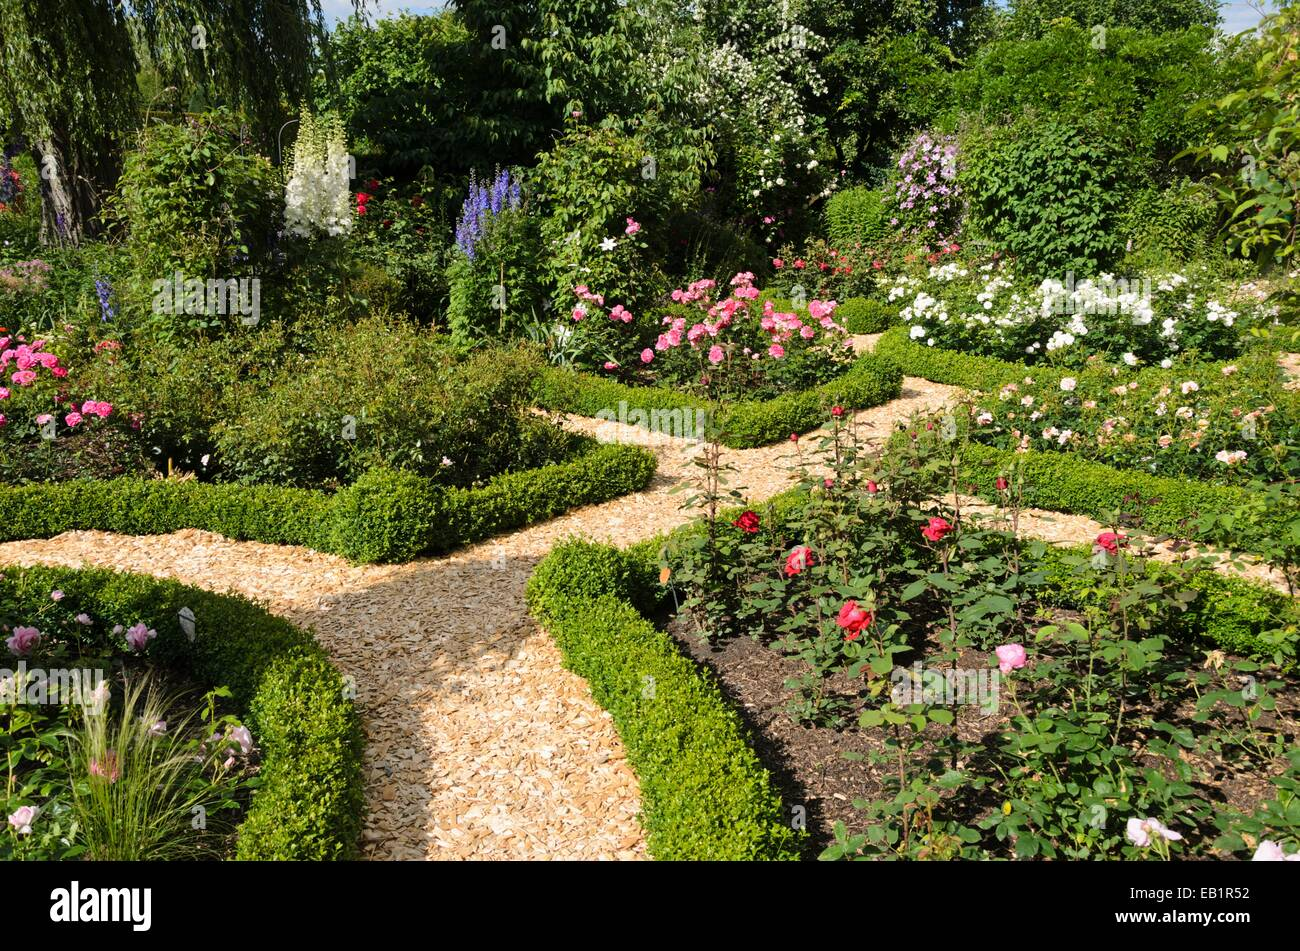 Boxwood hedges in a rose garden Design Marianne and Detlef Ldke